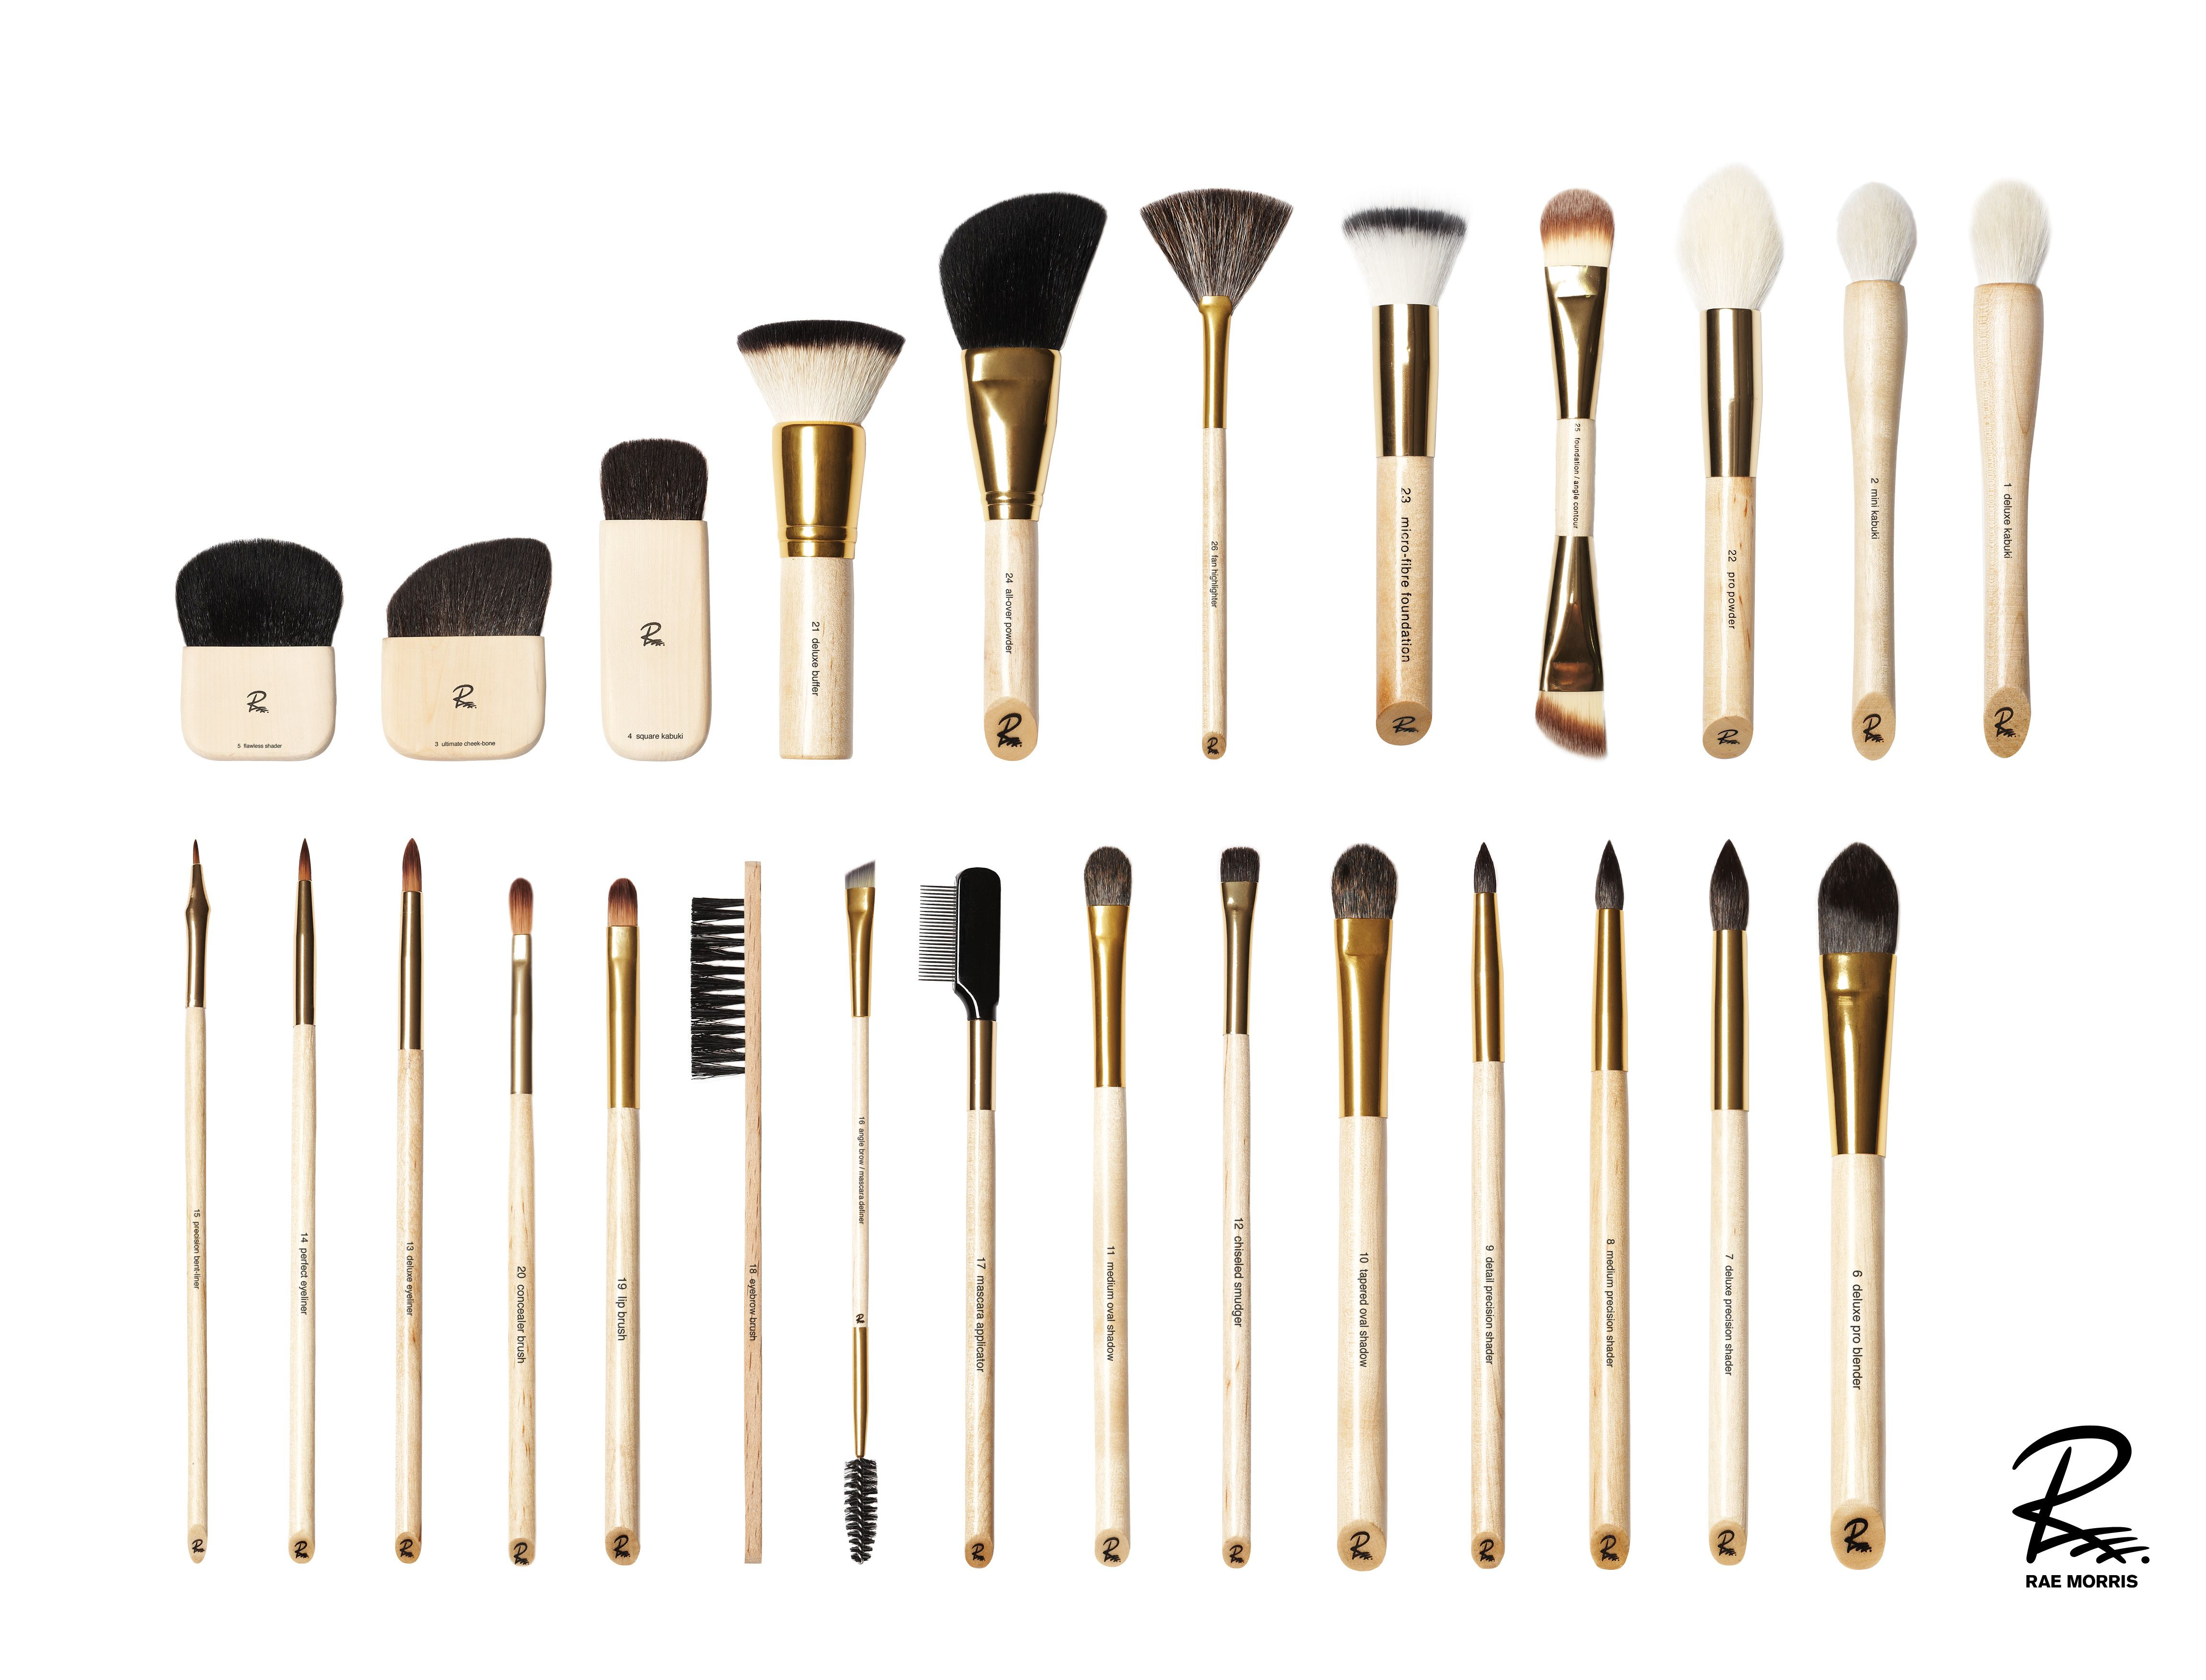 I would love to have all these brushes with images